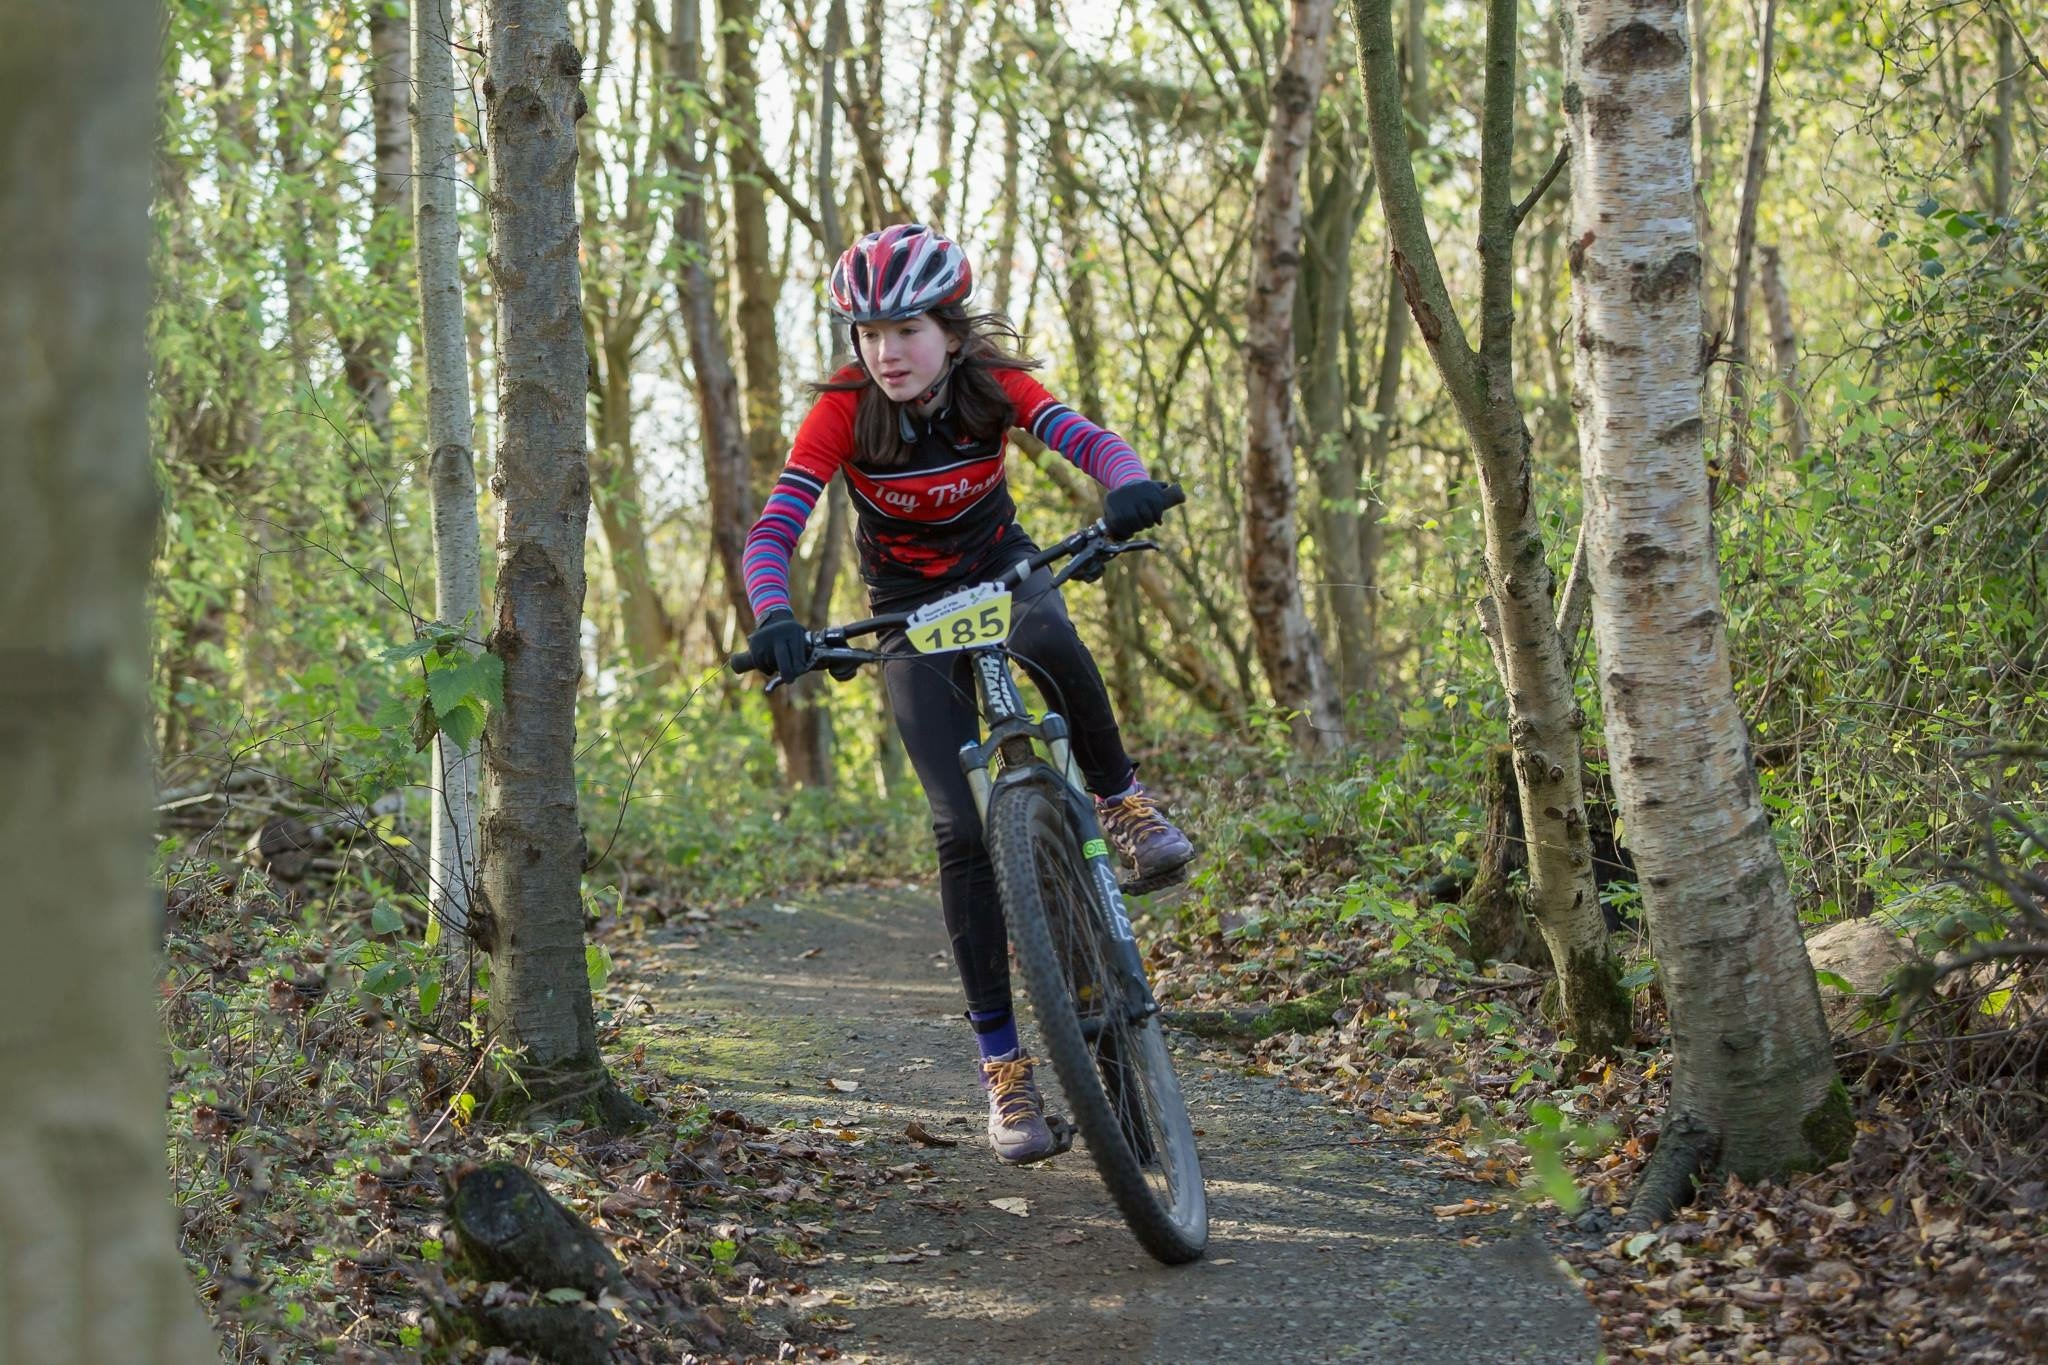 Maisie racing at Lochore Meadows.